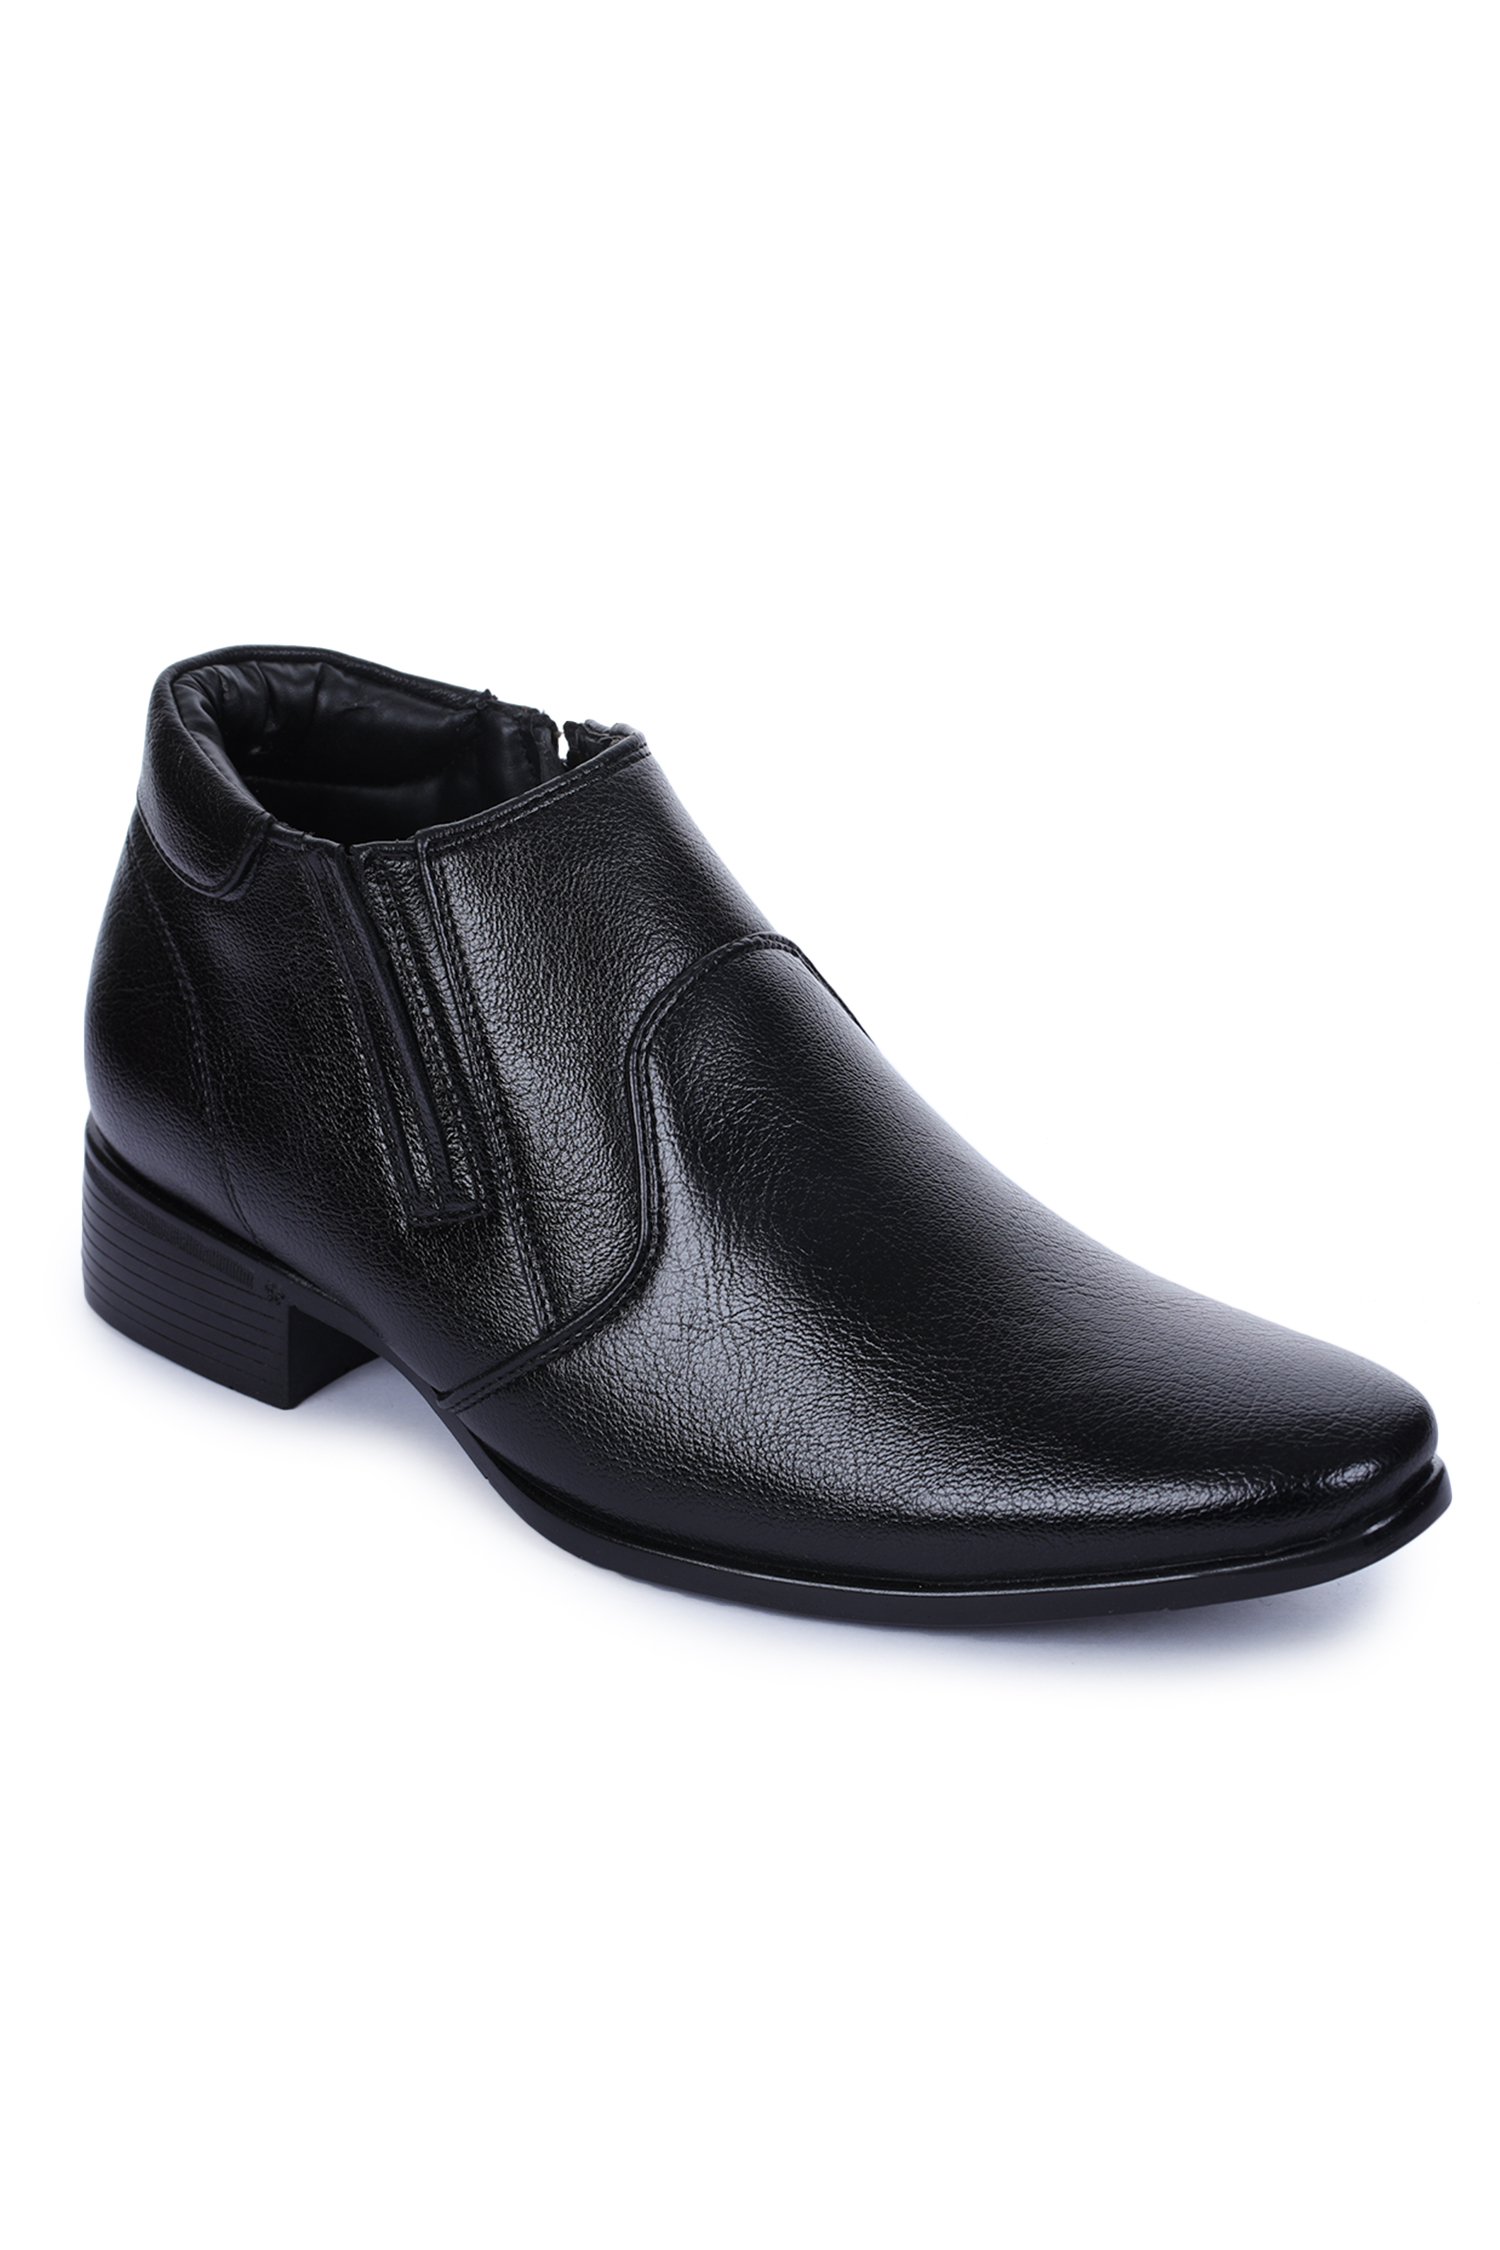 Liberty   Liberty Fortune Black Formal Oxfords Shoes A1-07_Black For - Men